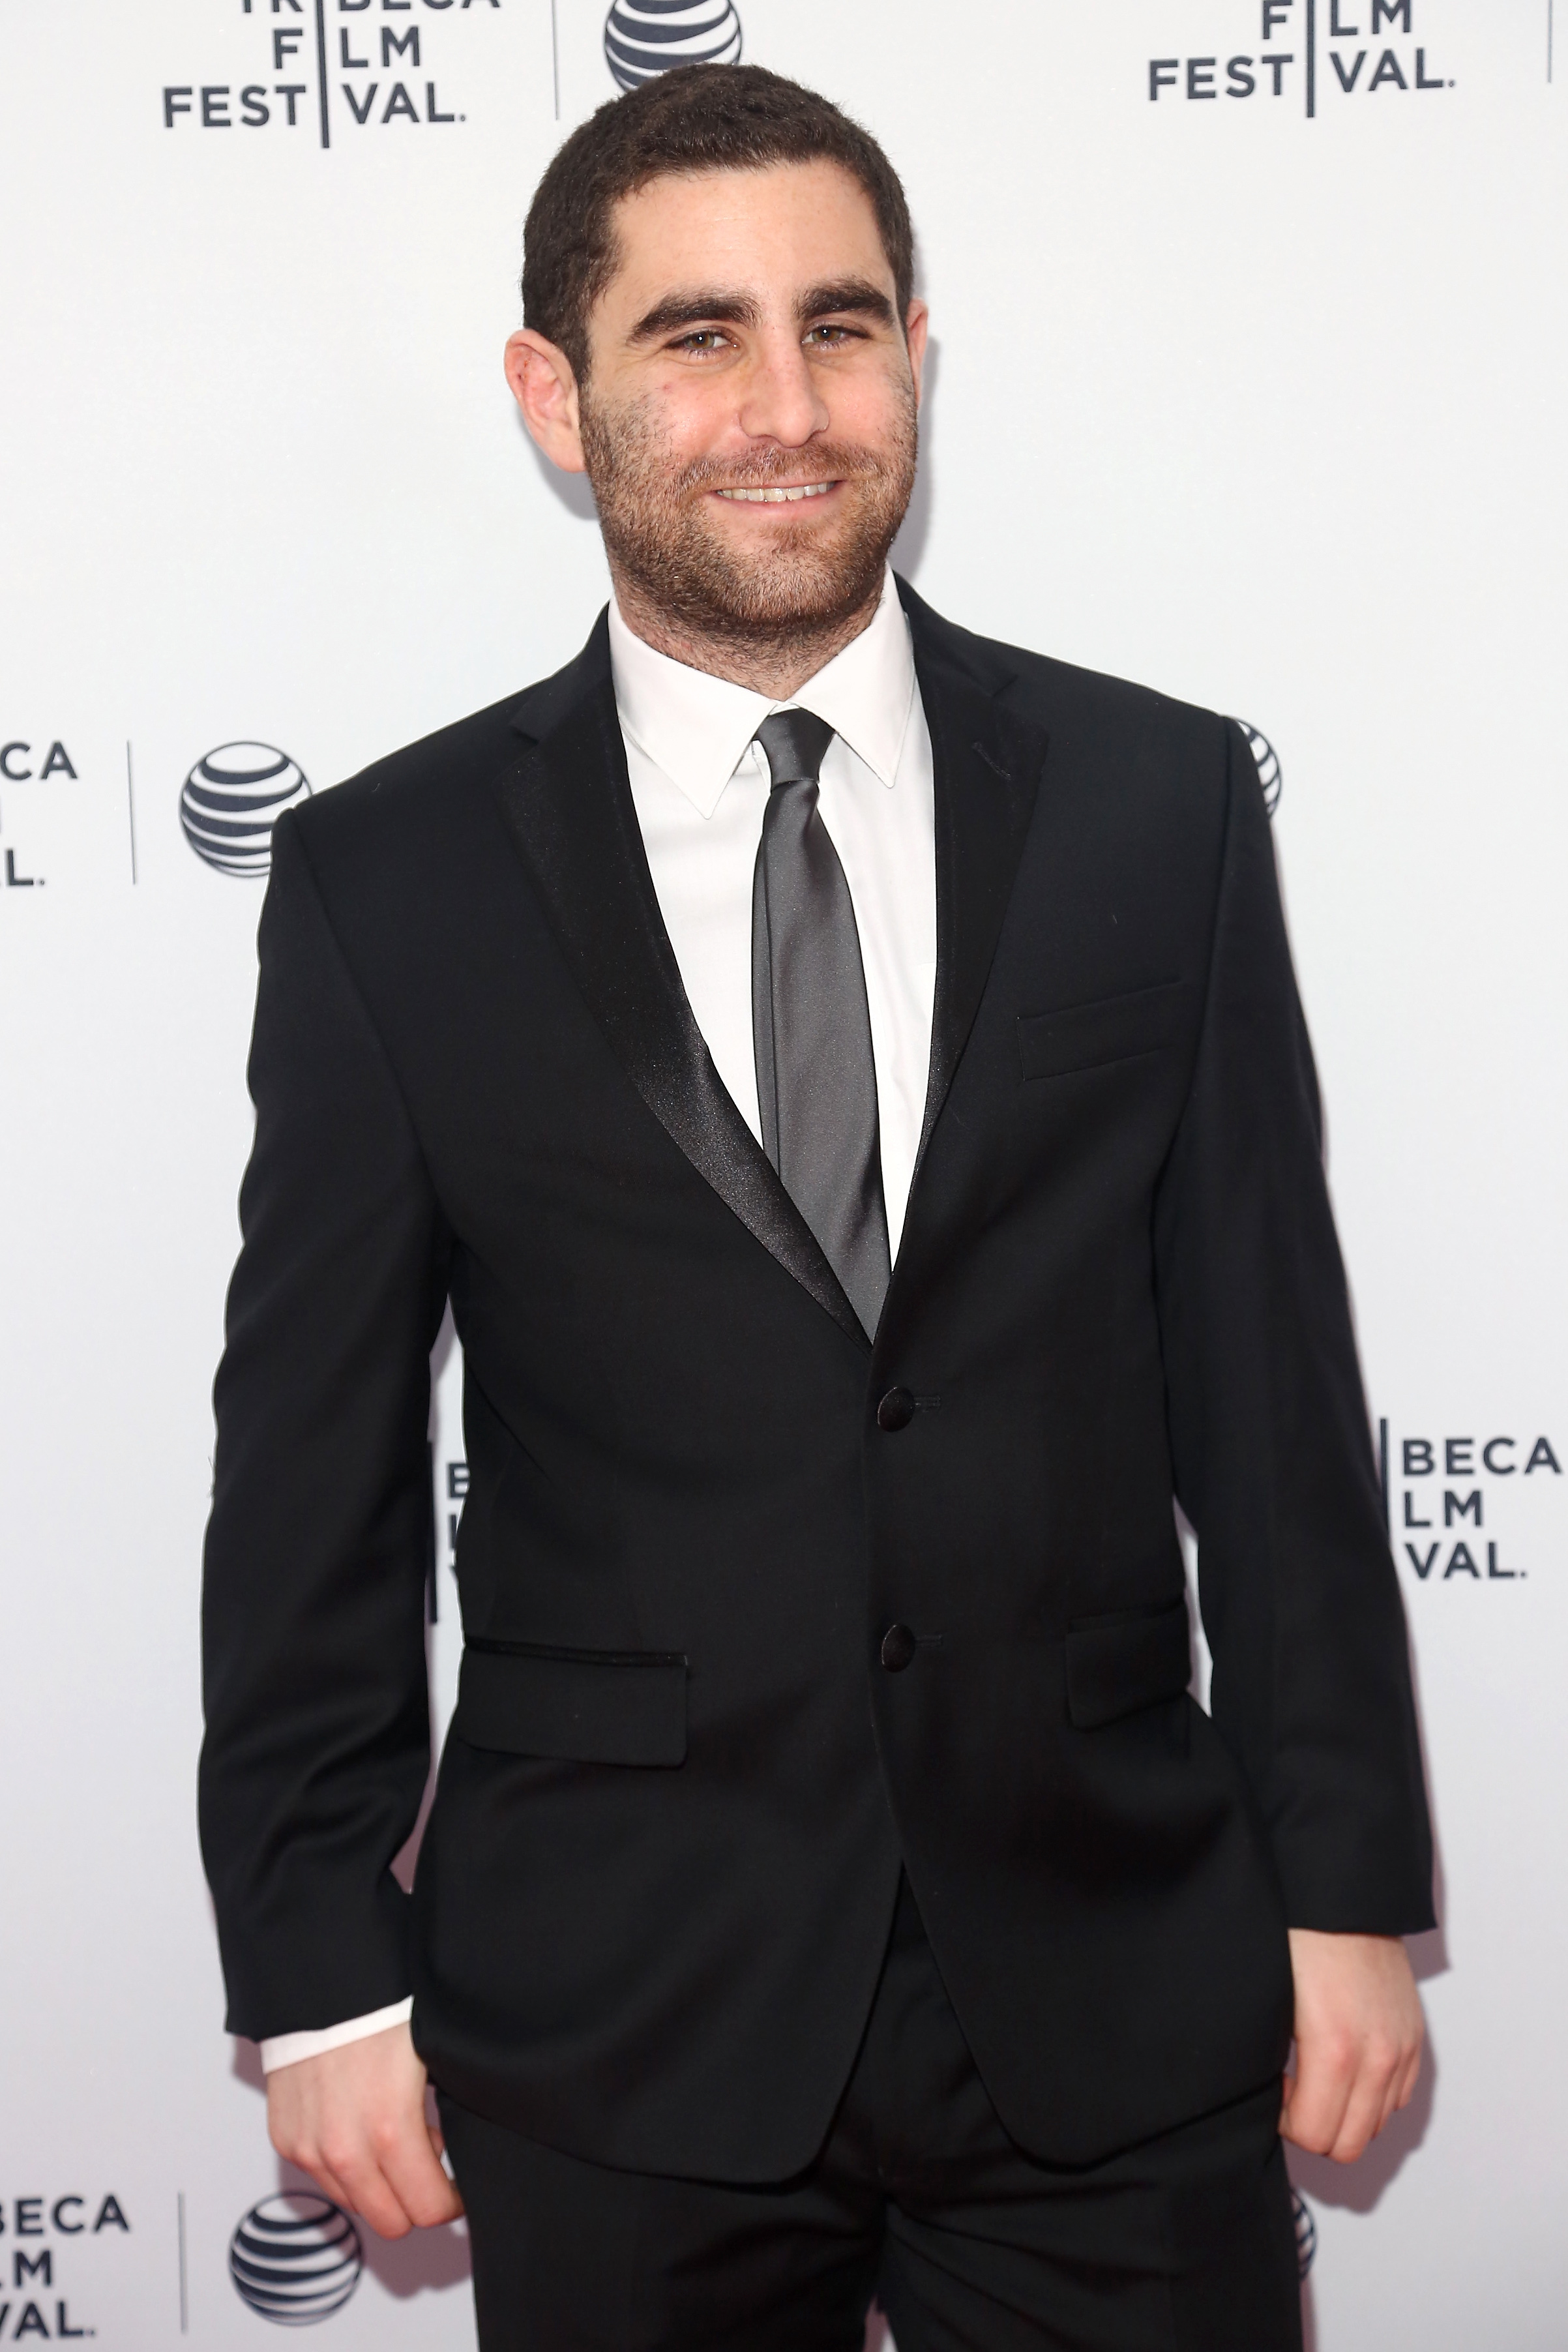 Charlie Shrem attends Tribeca Talks: After The Movie: The Rise and Rise Of Bitcoin during the 2014 Tribeca Film Festival at the SVA Theater on April 23, 2014 in New York City.